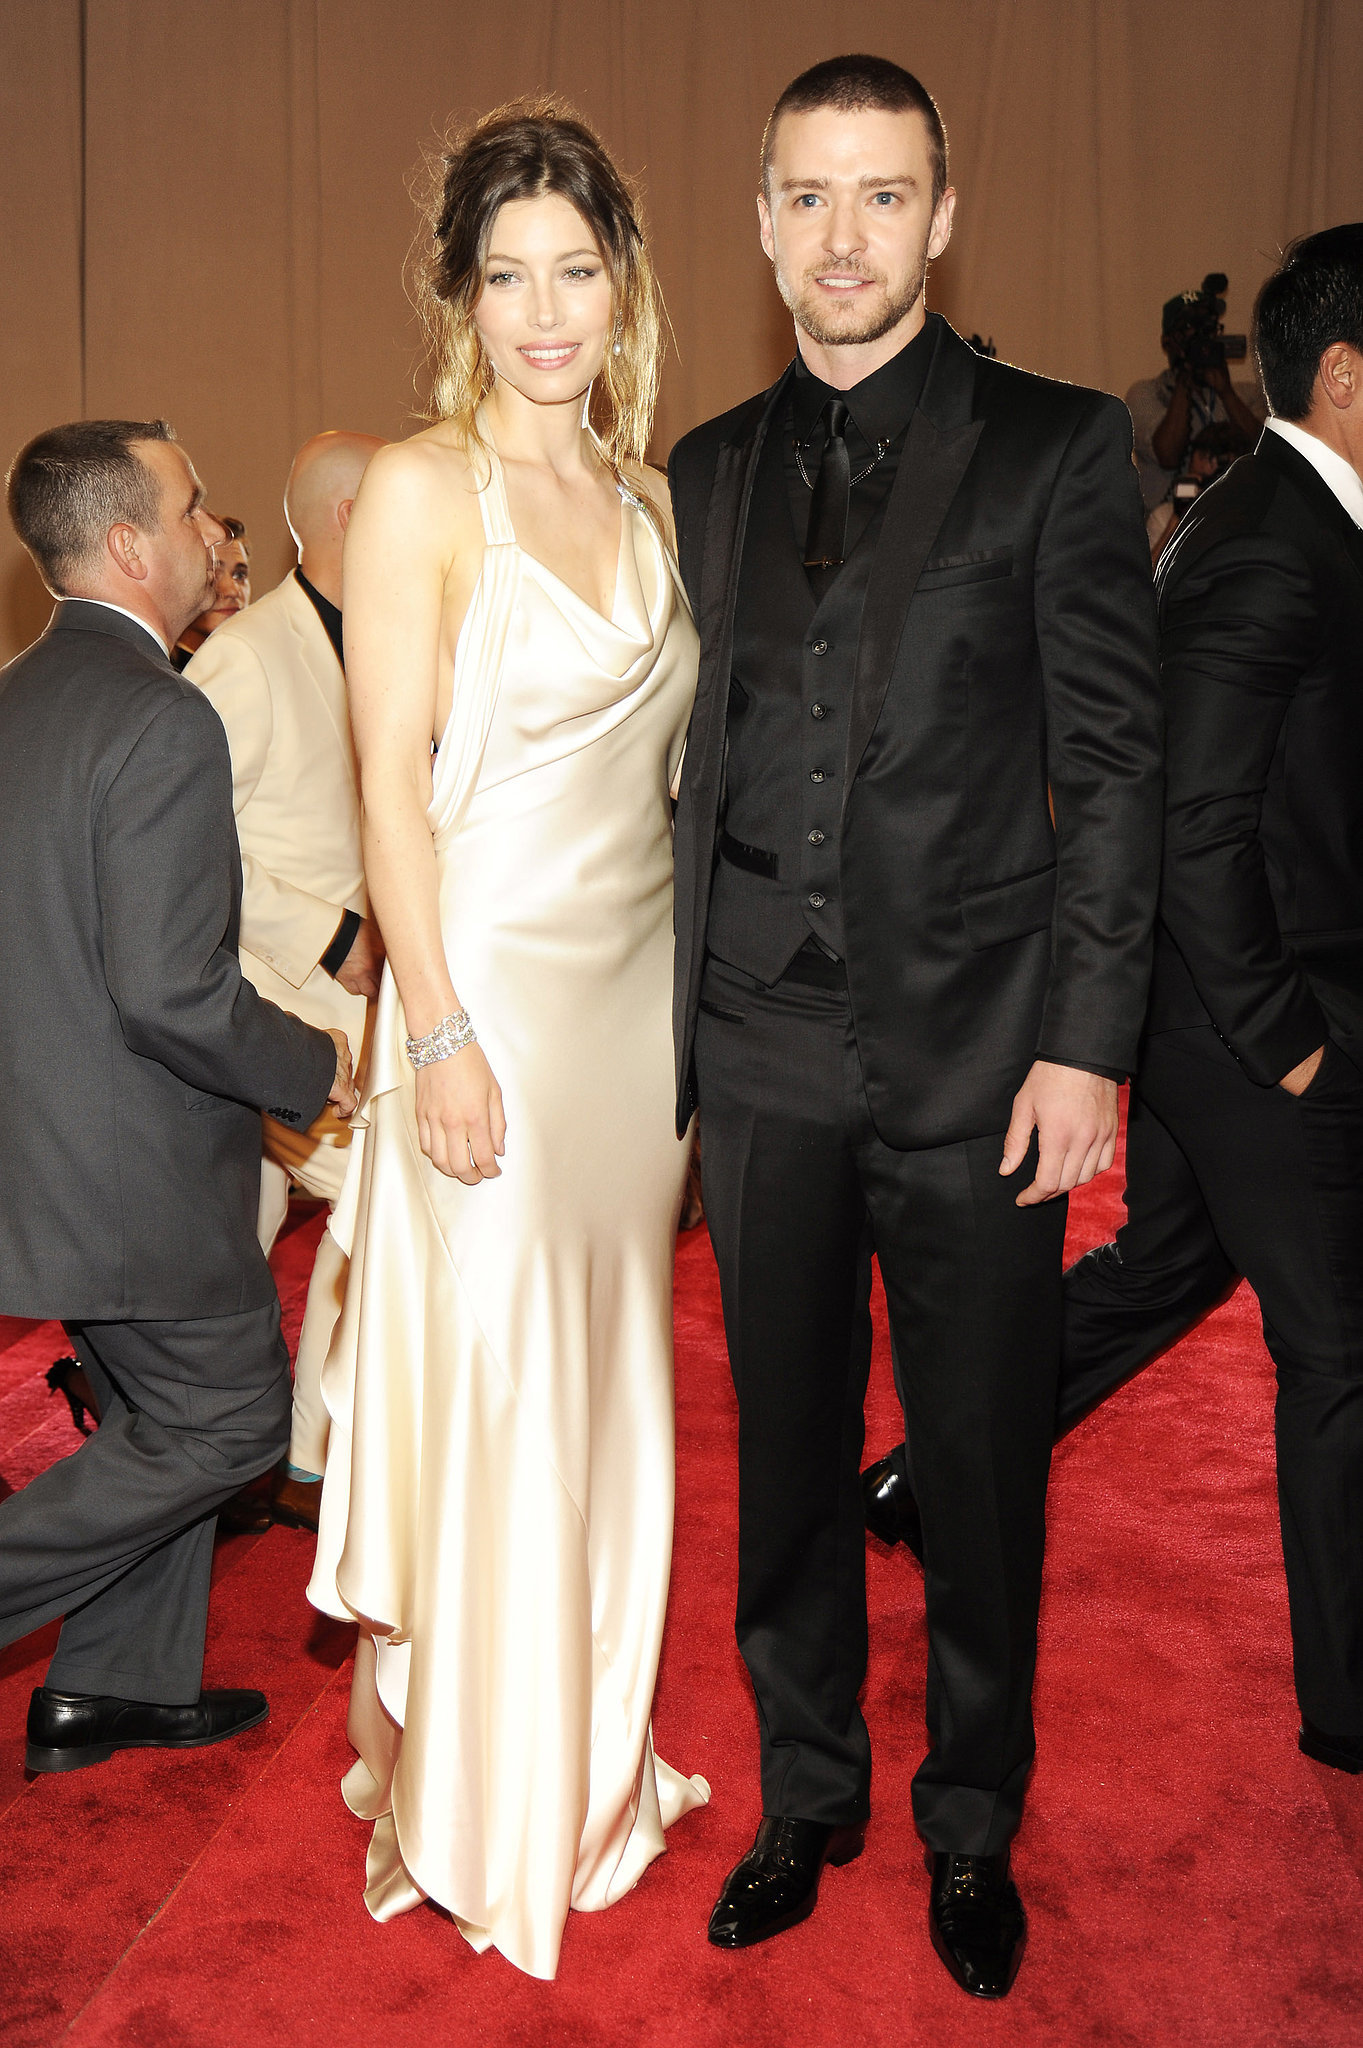 Justin attended the 2010 Met Gala with Jessica Biel in a black three-piece suit.